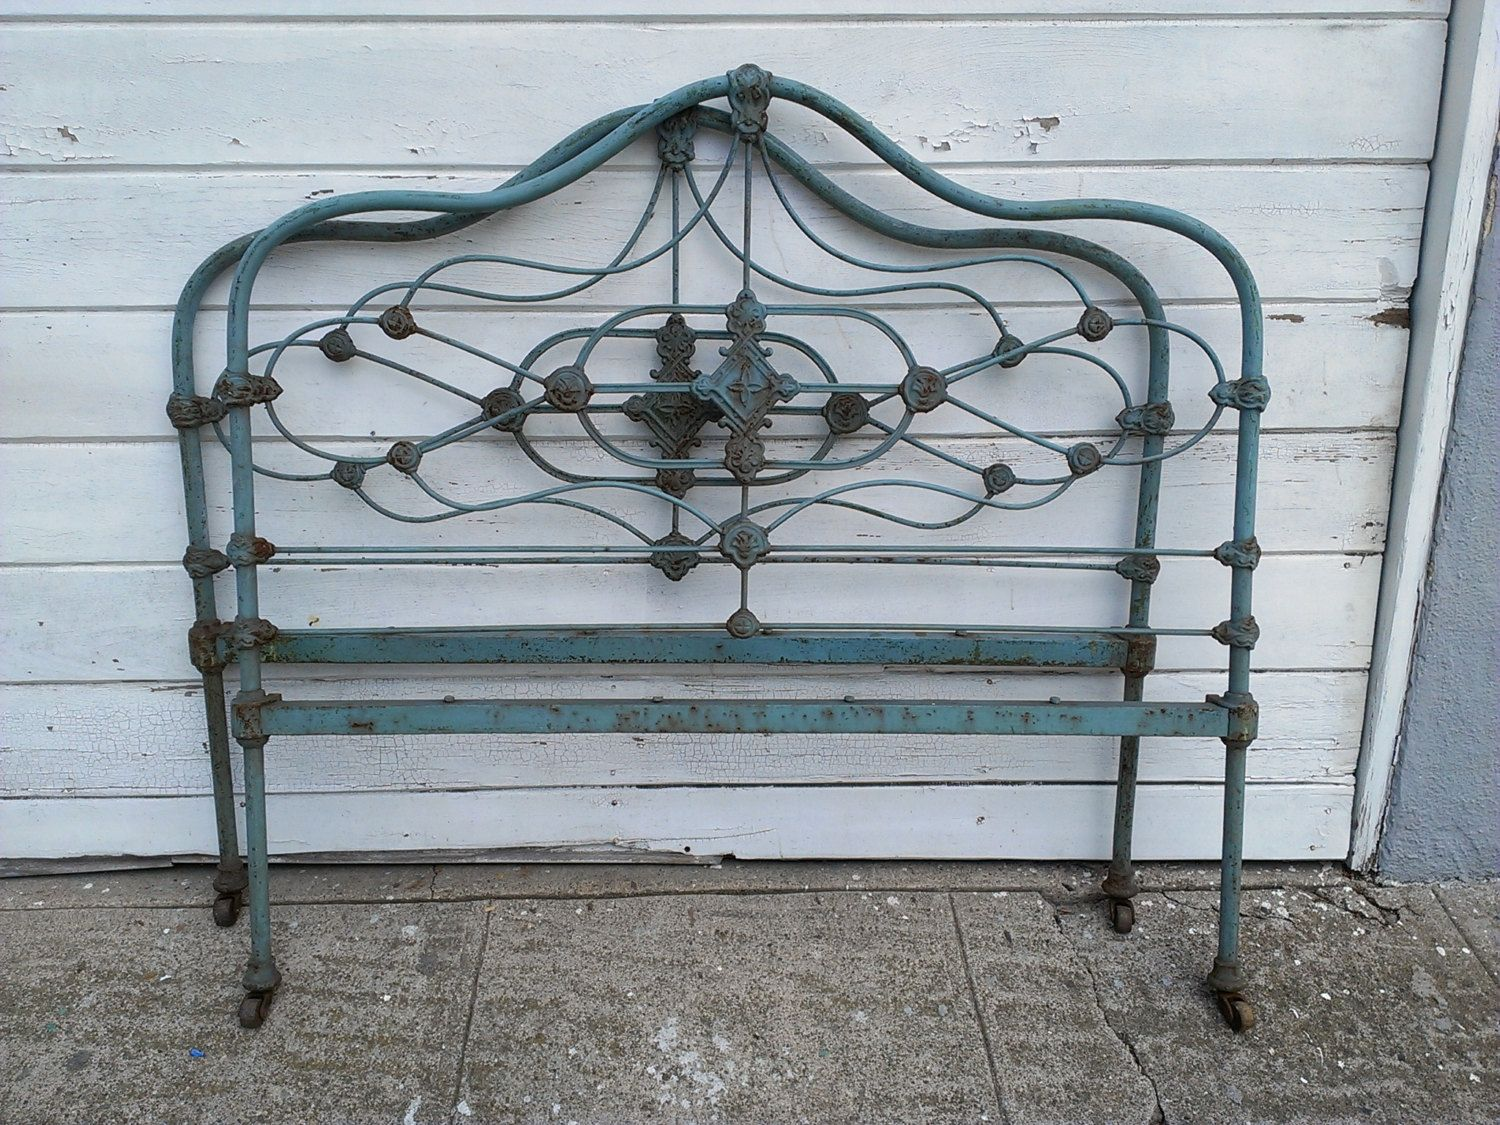 Antique Iron Bed Frame Value Cast Iron Bed Frame Iron Bed Frame